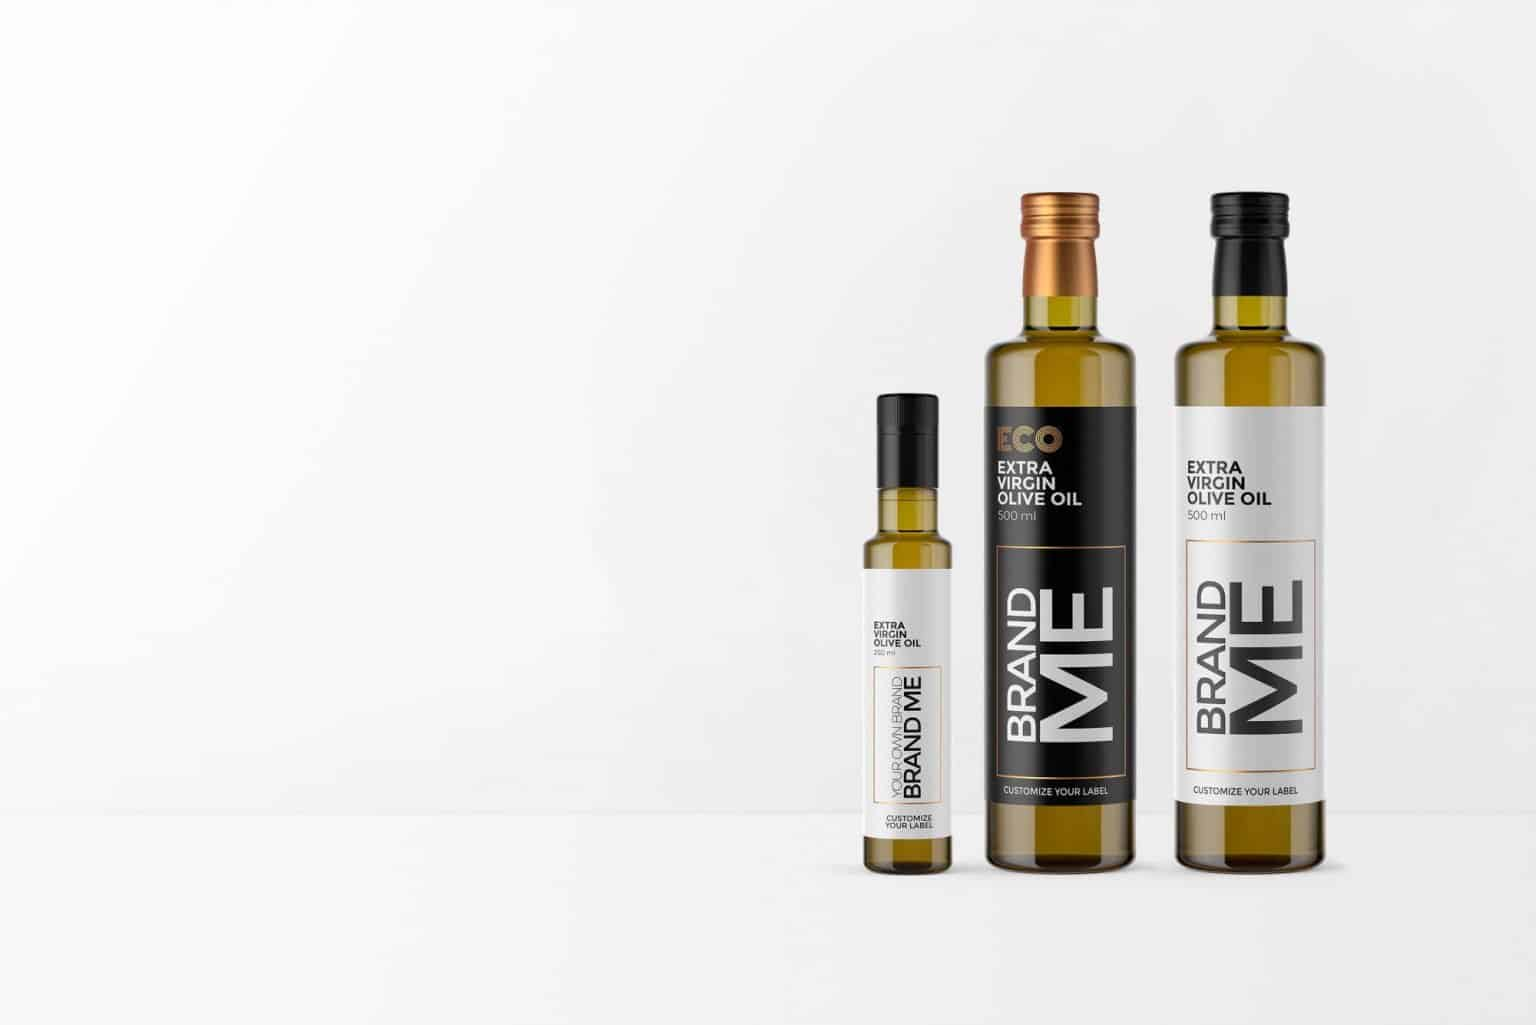 Extra Virgin Olive Oil Private Label